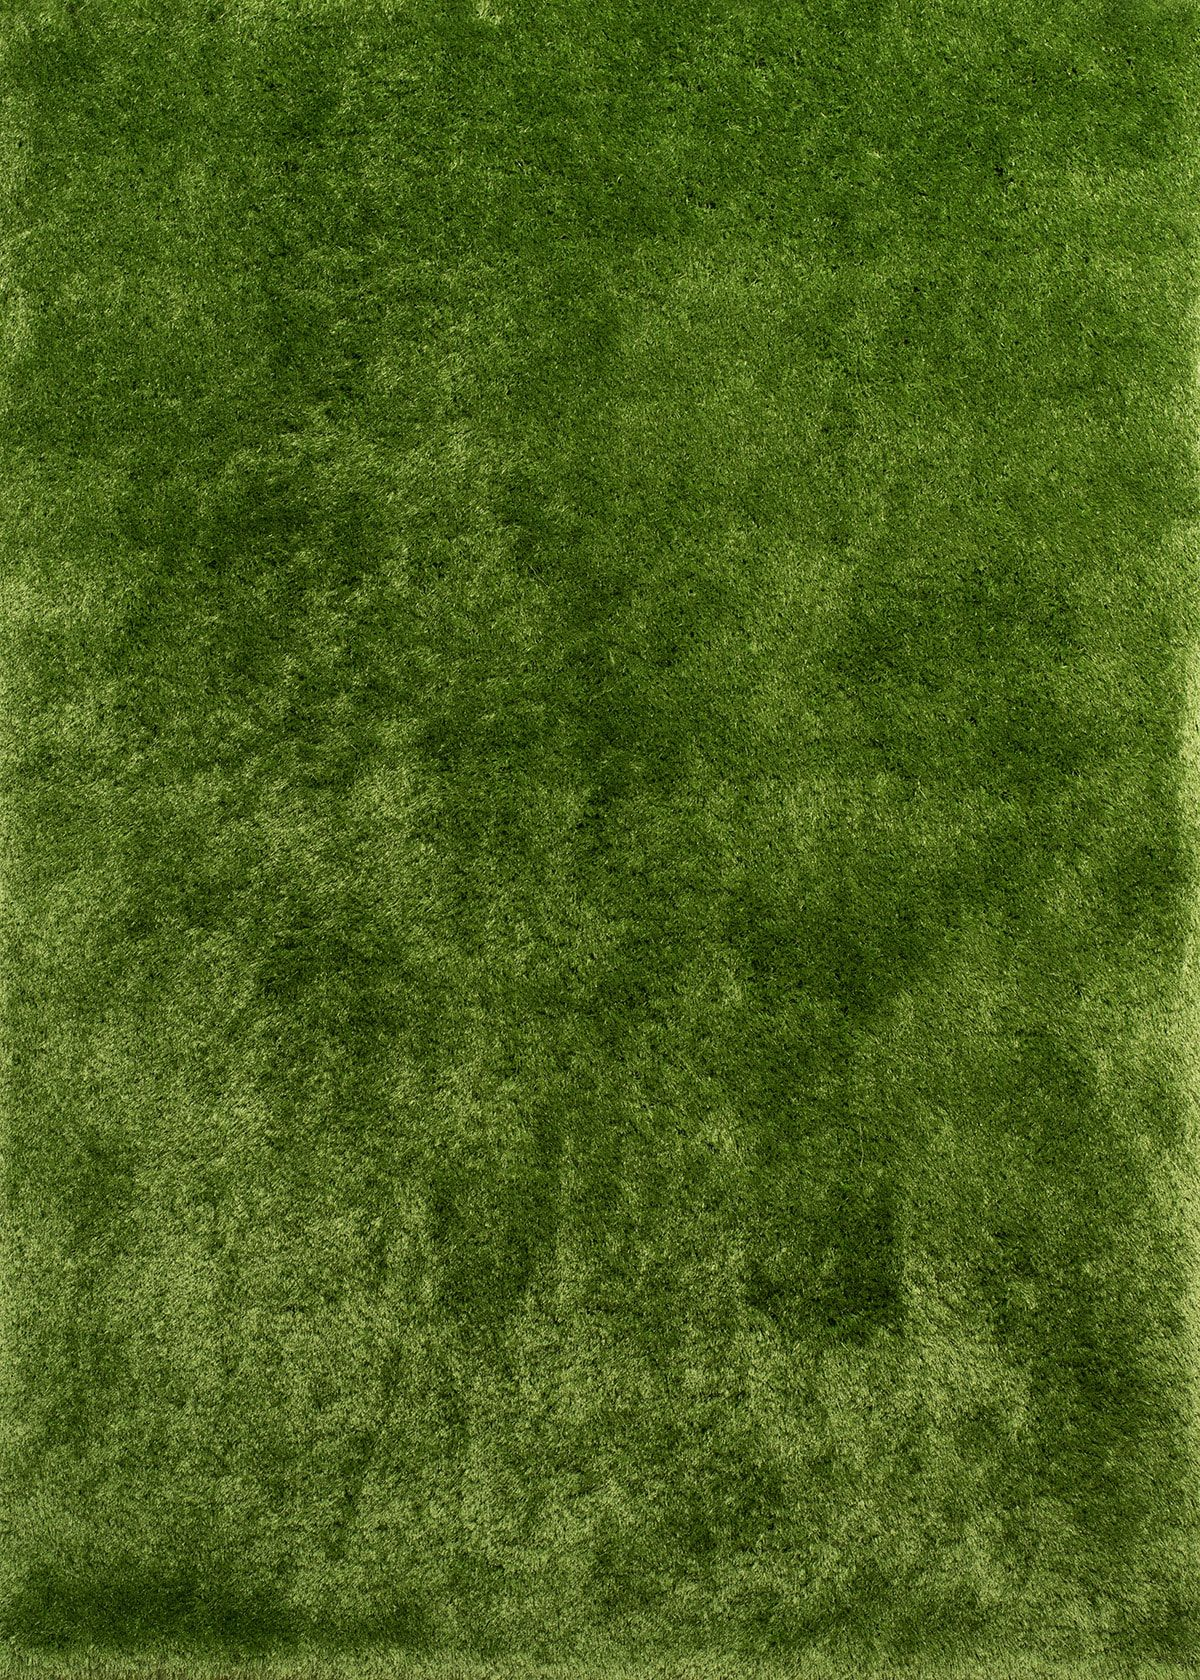 Venetia Color Green Size 7 10 X 10 6 Green Rug Green Area Rugs United Weavers Of America